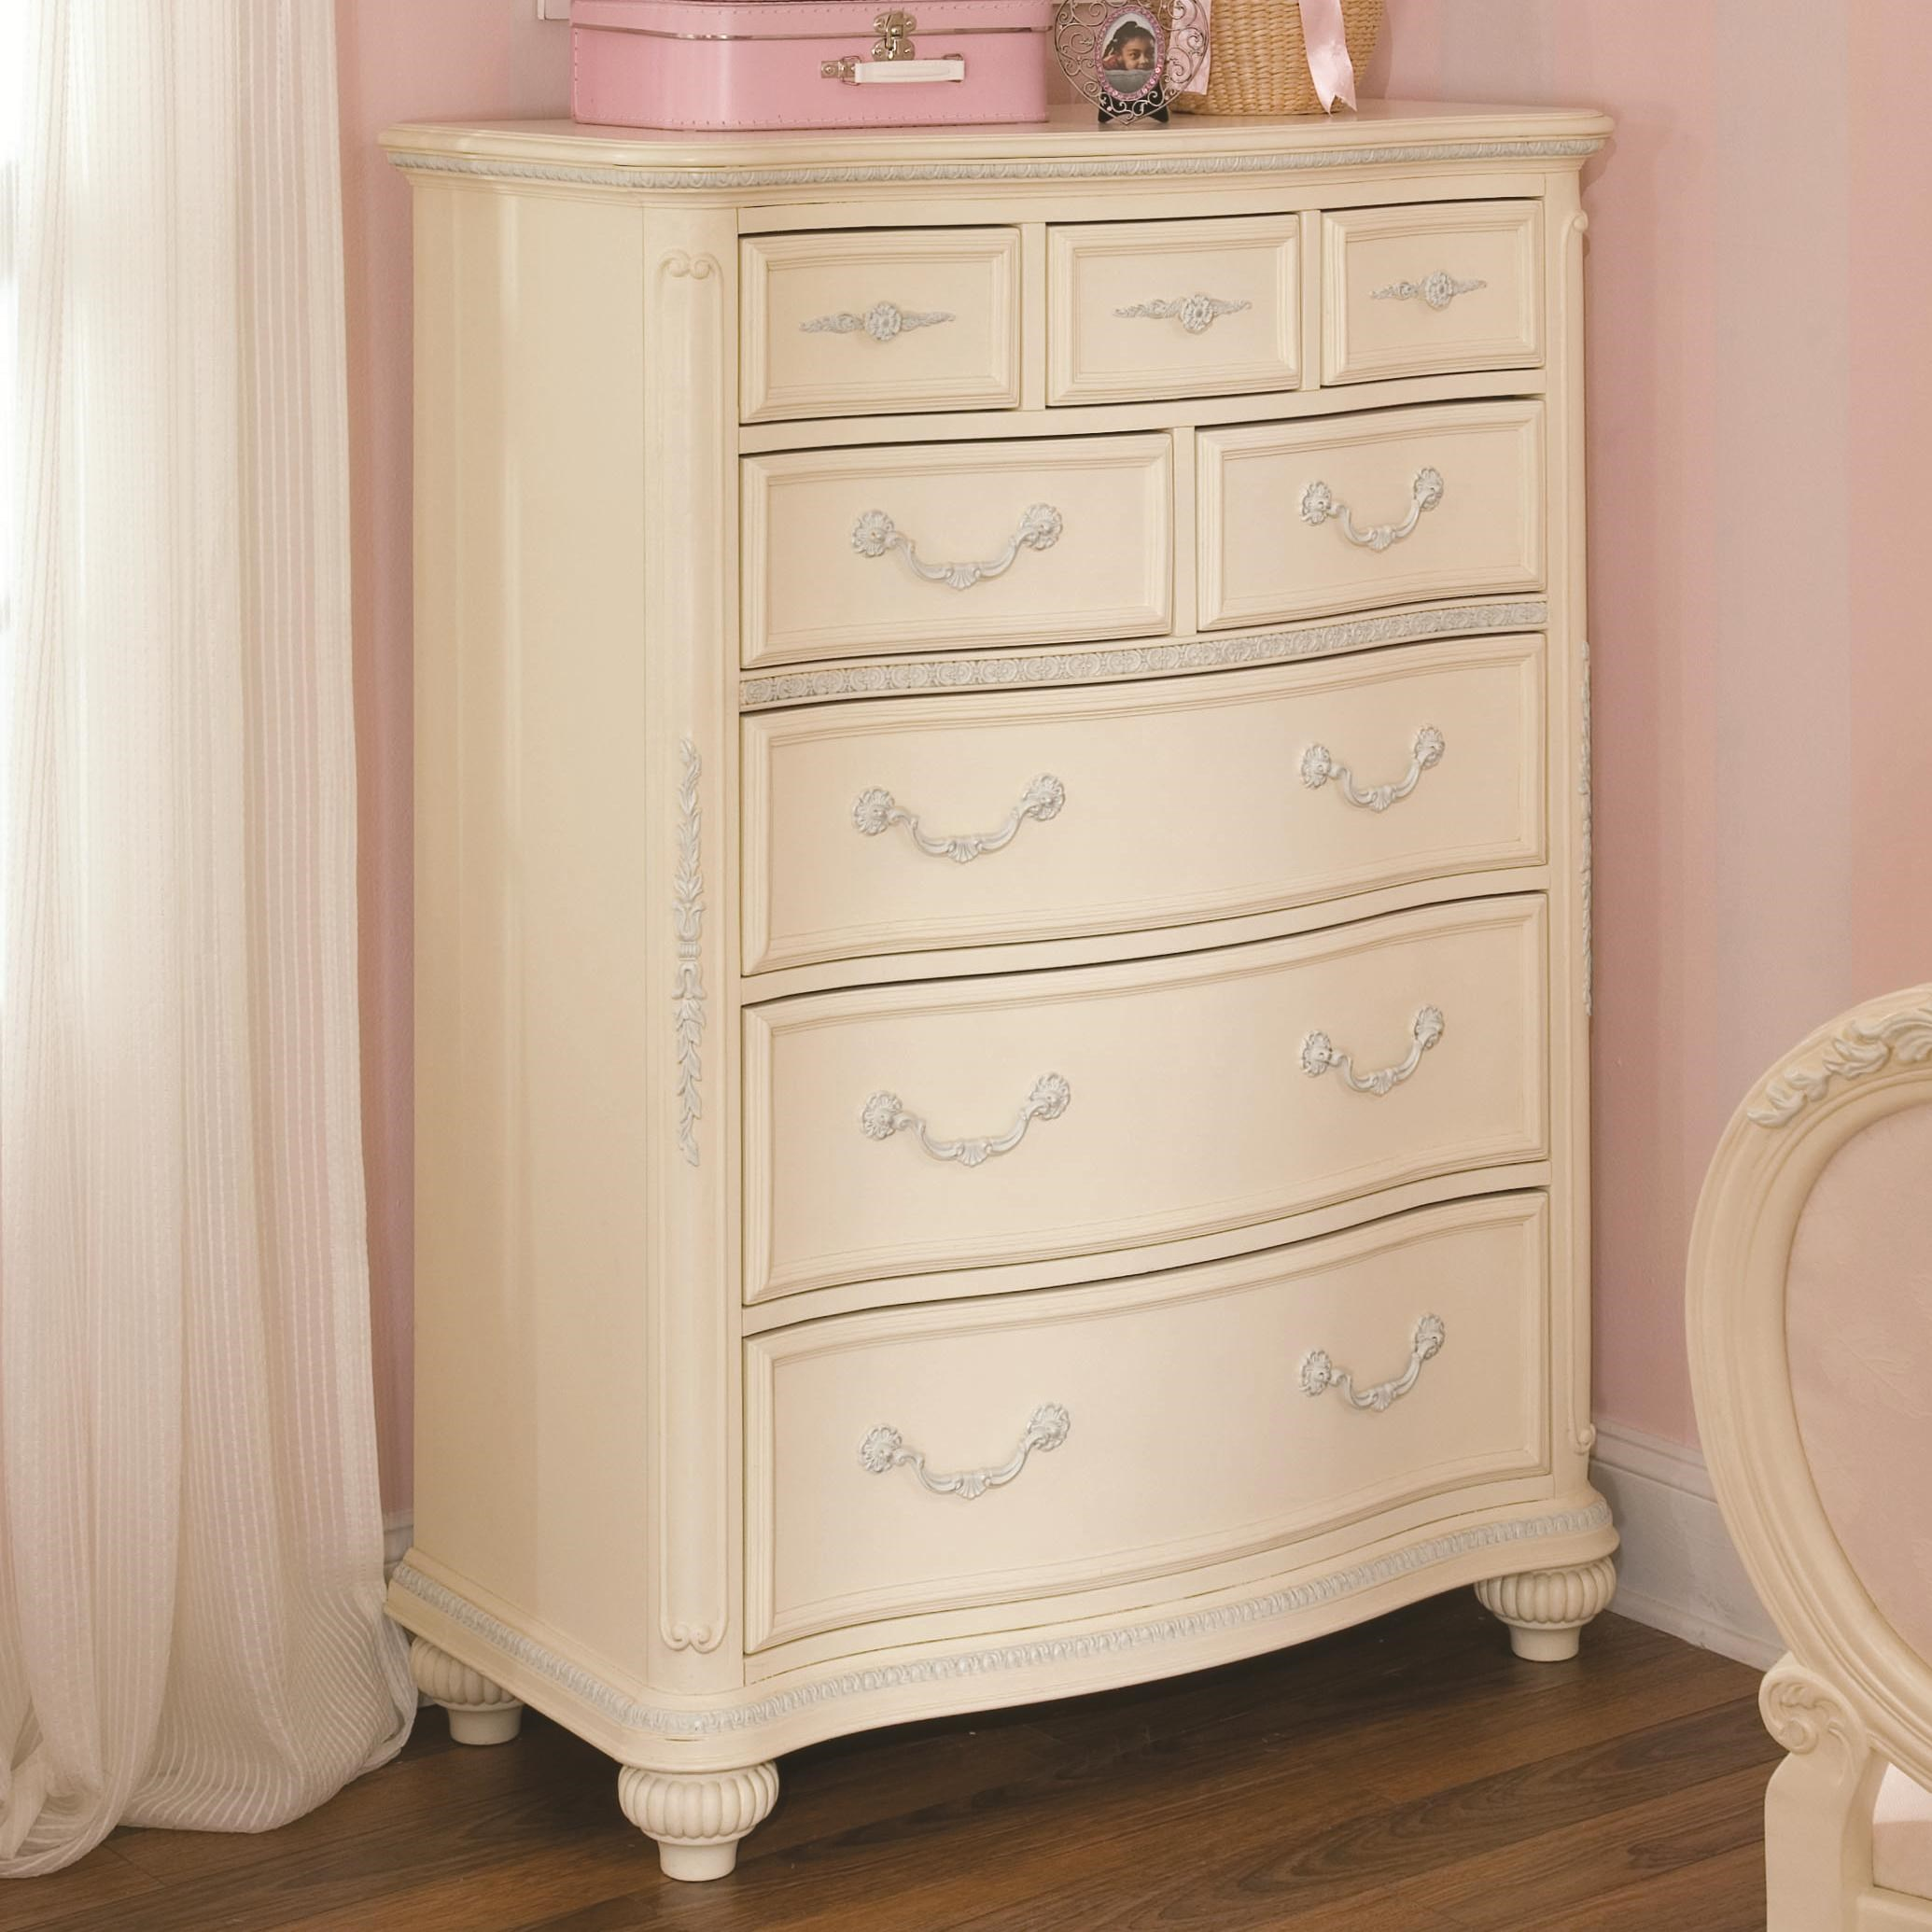 Lea Industries Jessica McClintock Romance Eight Drawer Chest With  Decorative Carving Accents